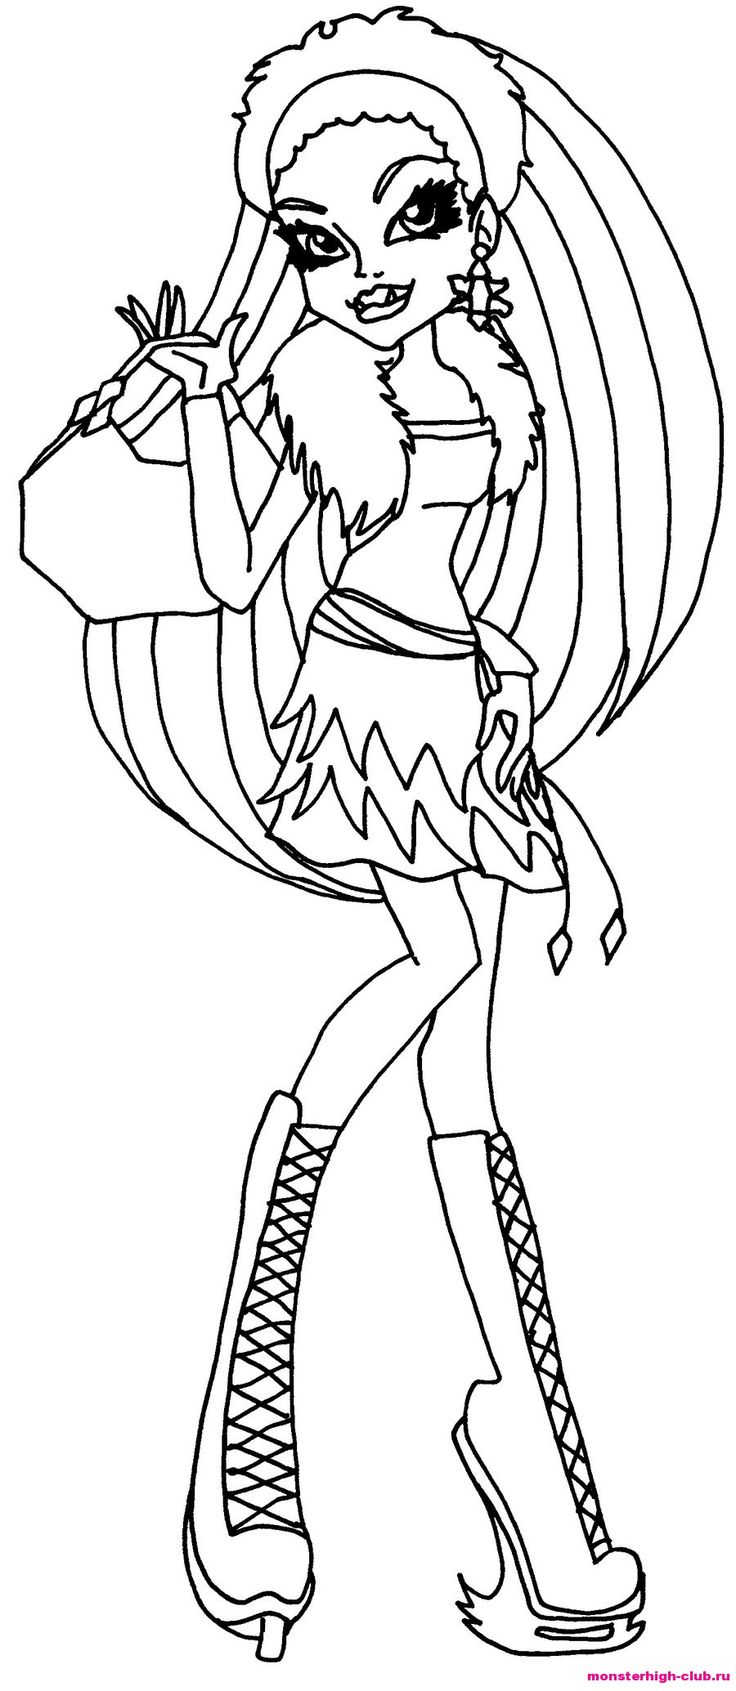 Monster high Frankie Stein coloring page. Monster High